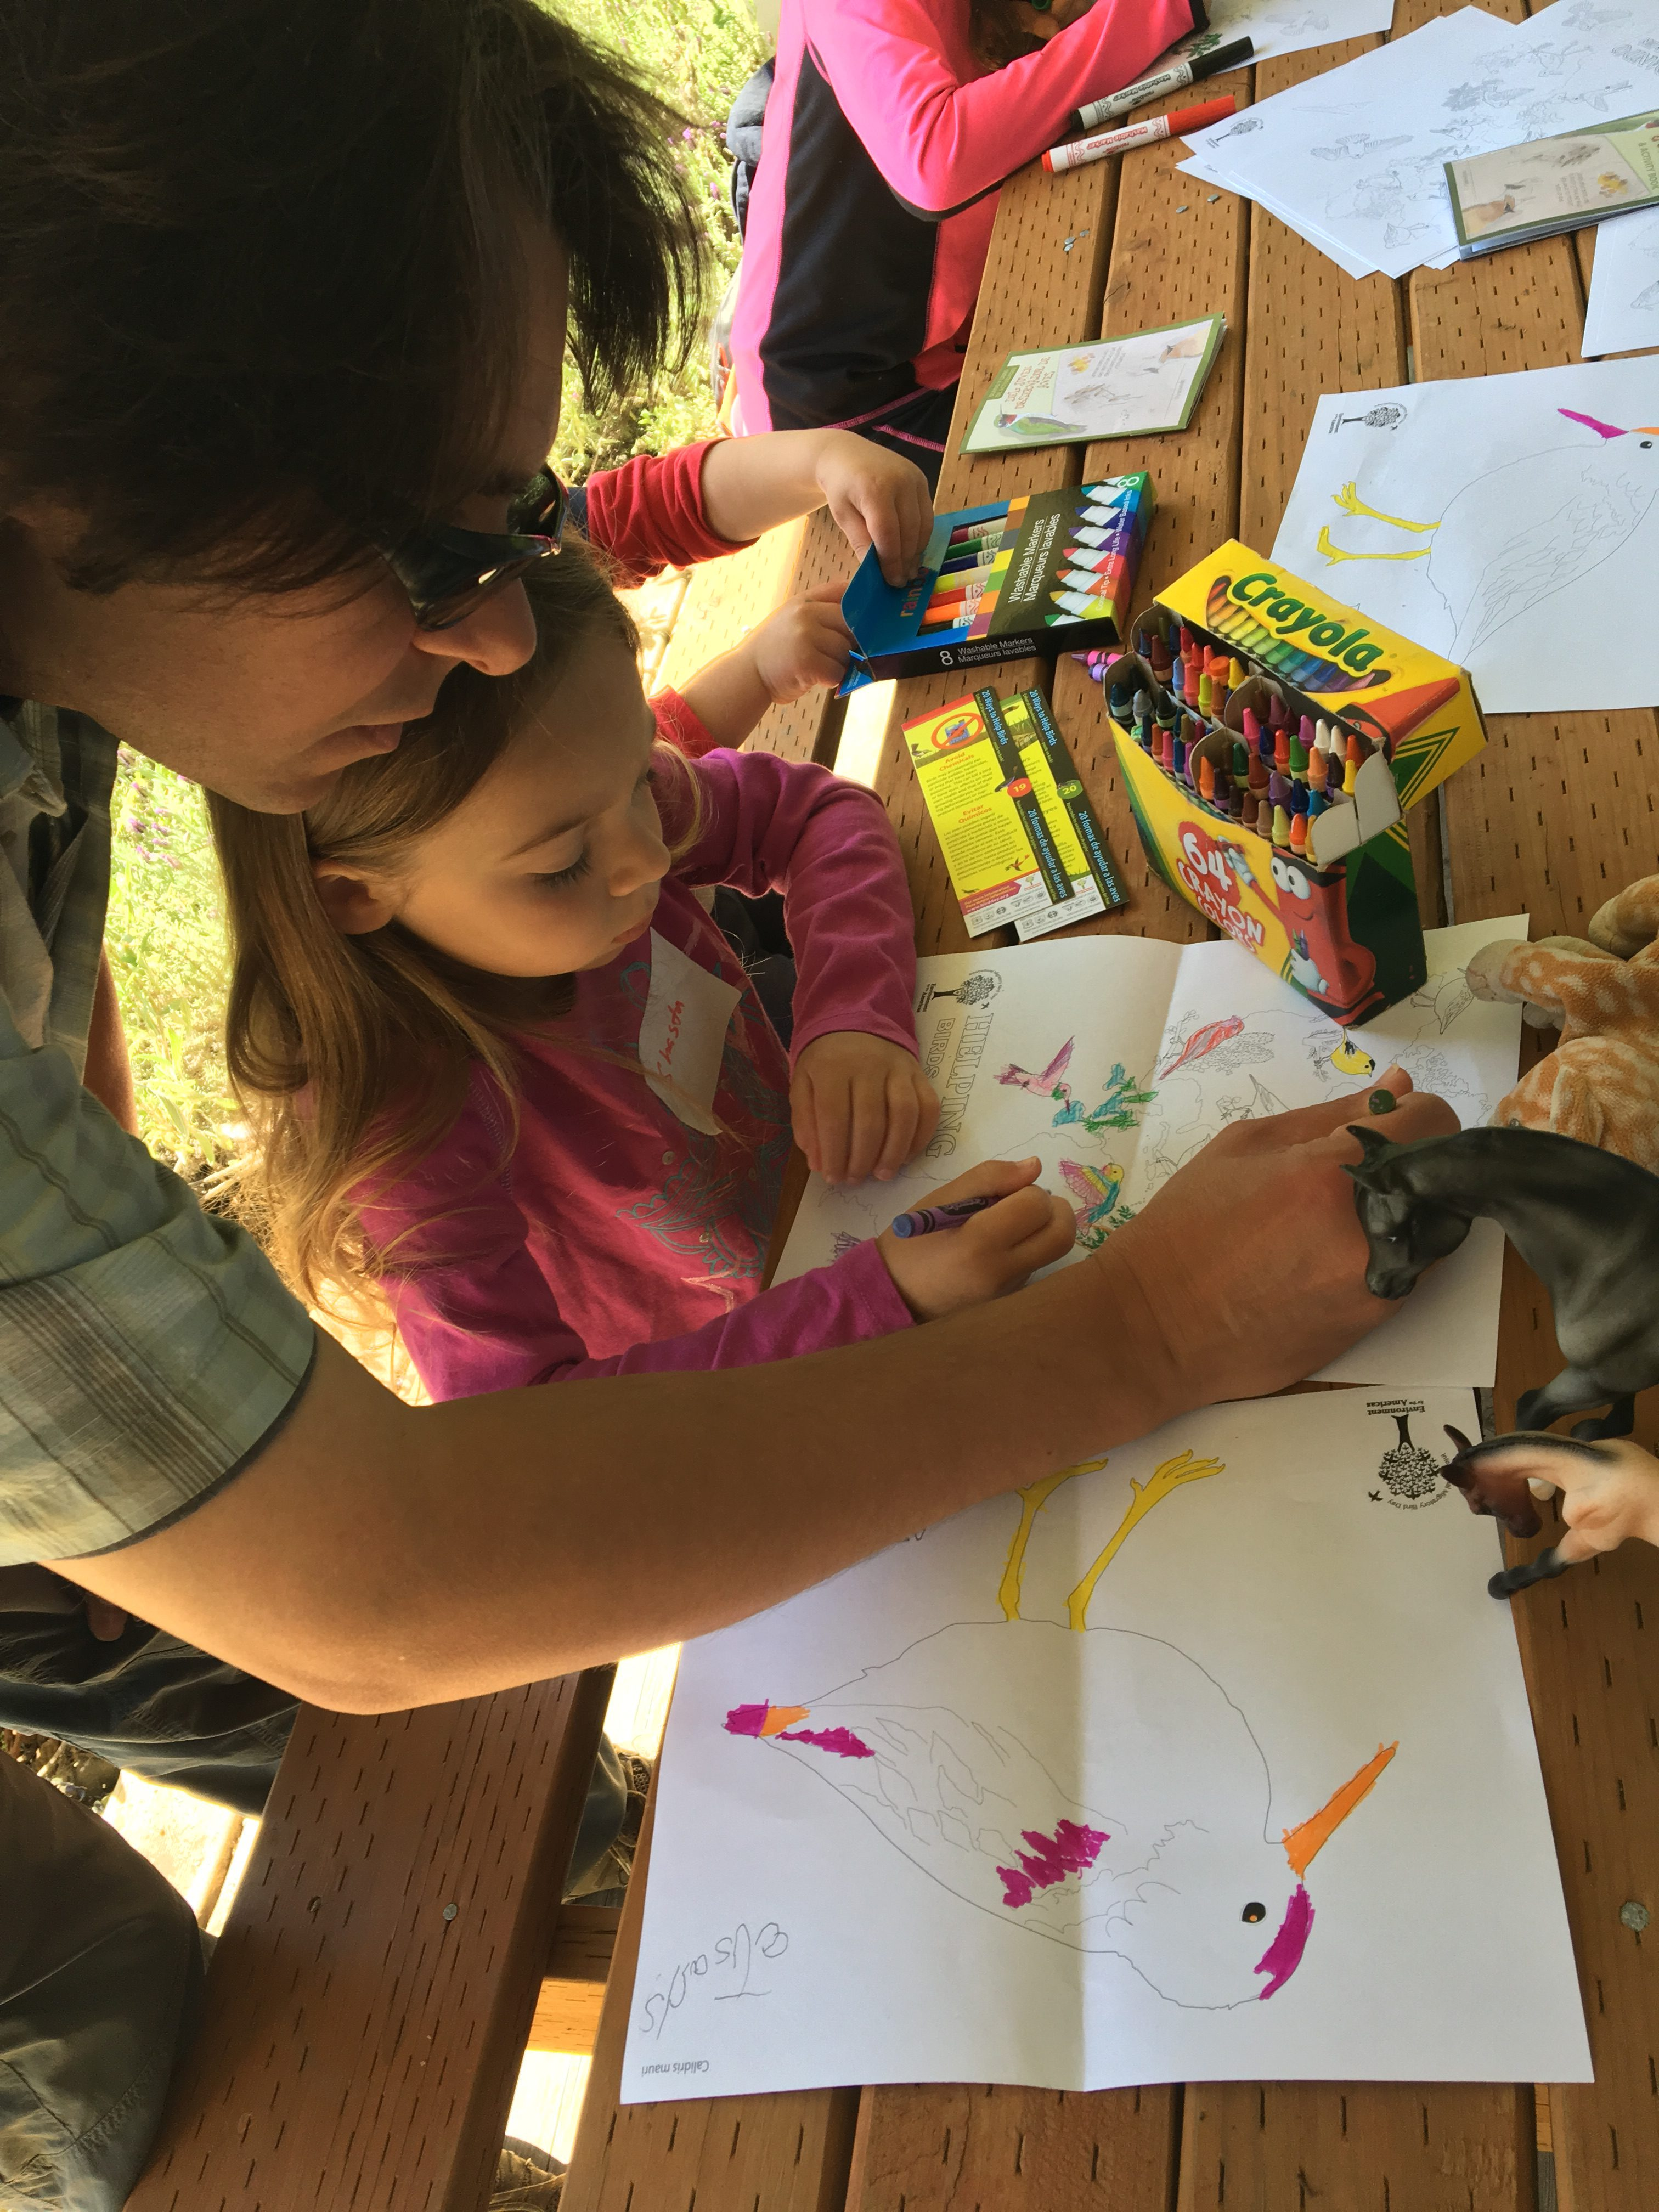 A Bird's Eye View station where kids are learning more about observing birds and coloring pictures of key migratory bird species.